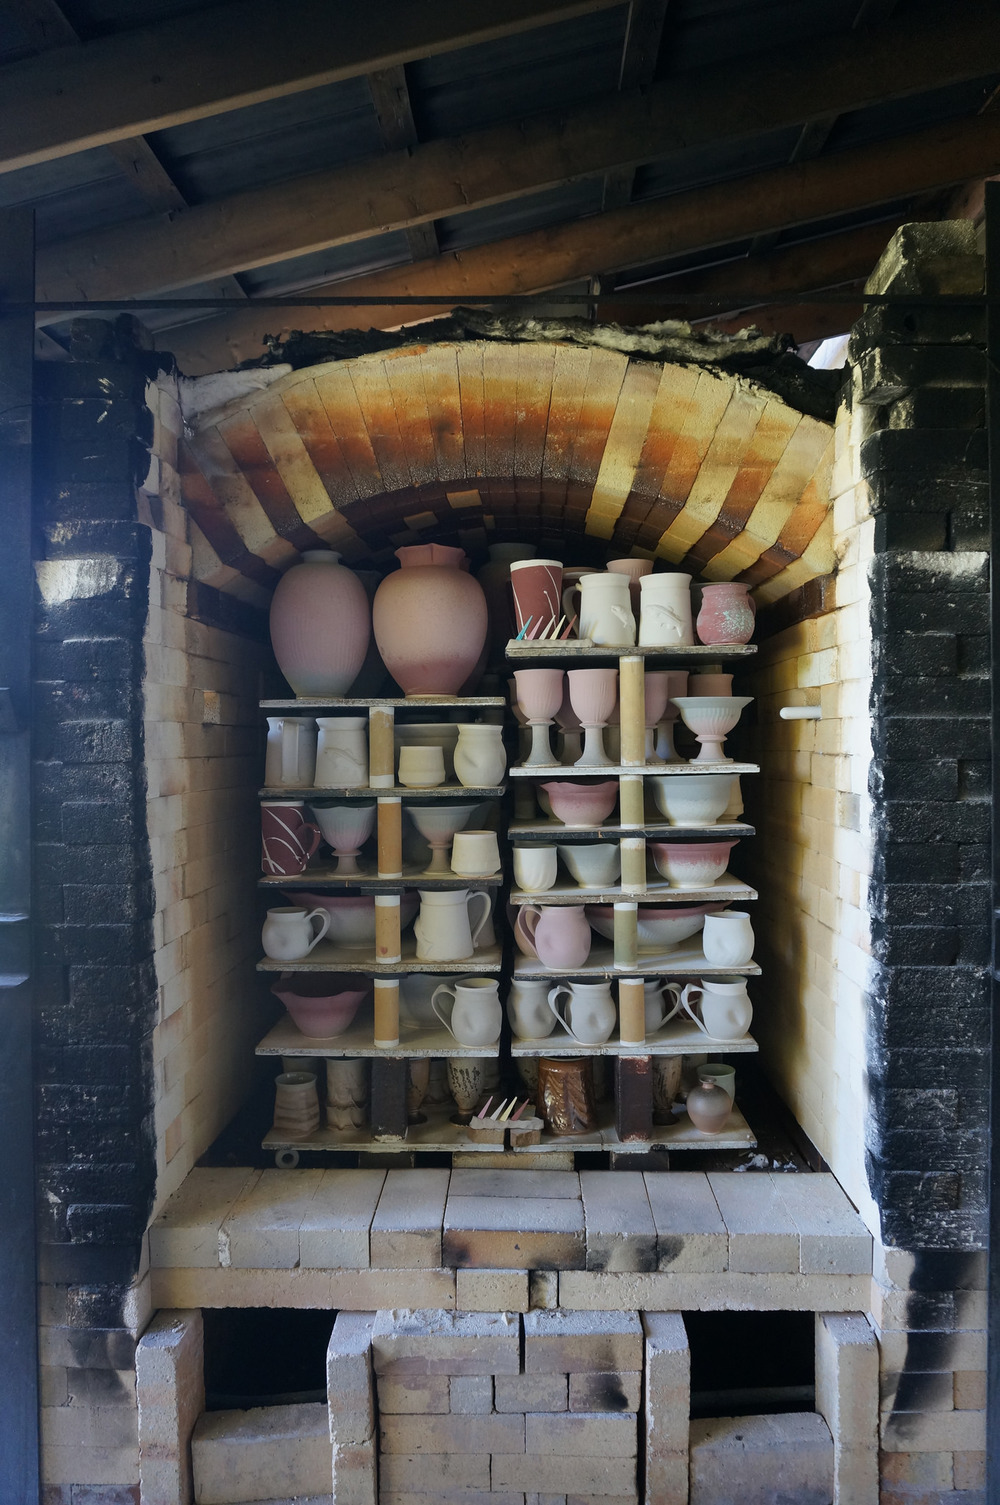 and finally, the kiln all loaded and ready to go! We'll be able to open this one up on Saturday!